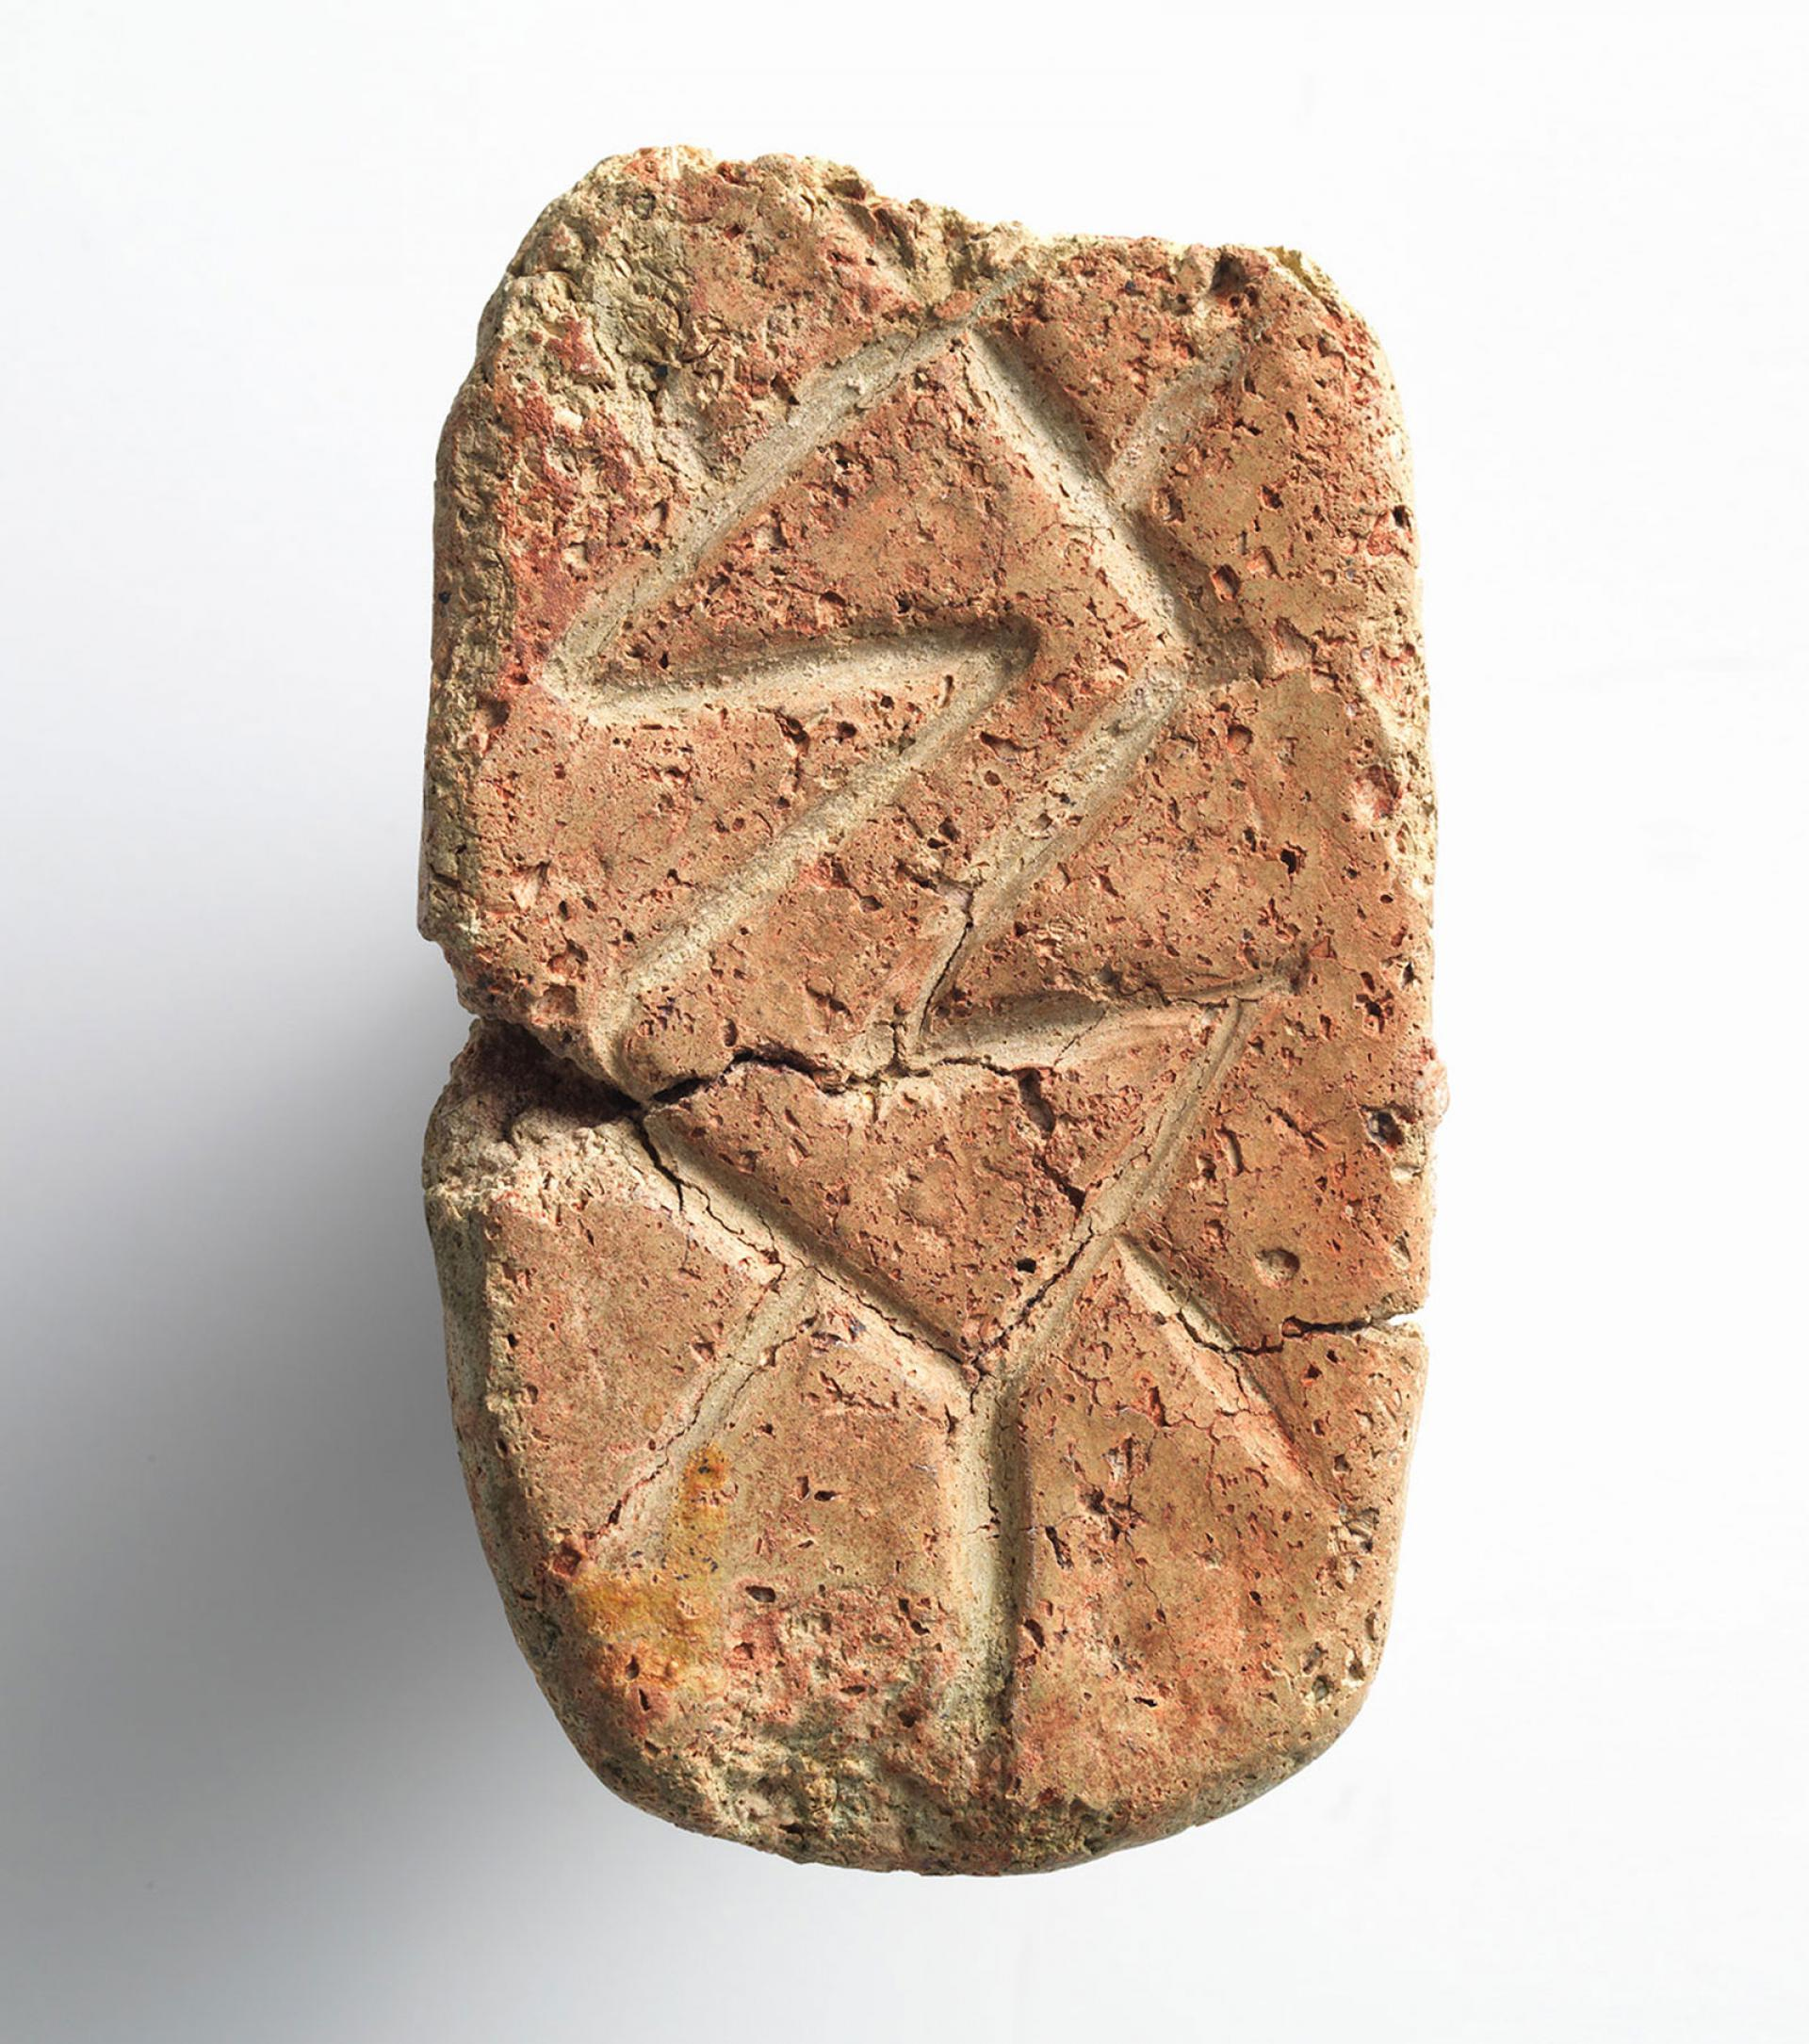 SHM 4609 - Stamp sealTerracottaEarly Chalcolithic AgeMid 6th millenium BCLakes Region